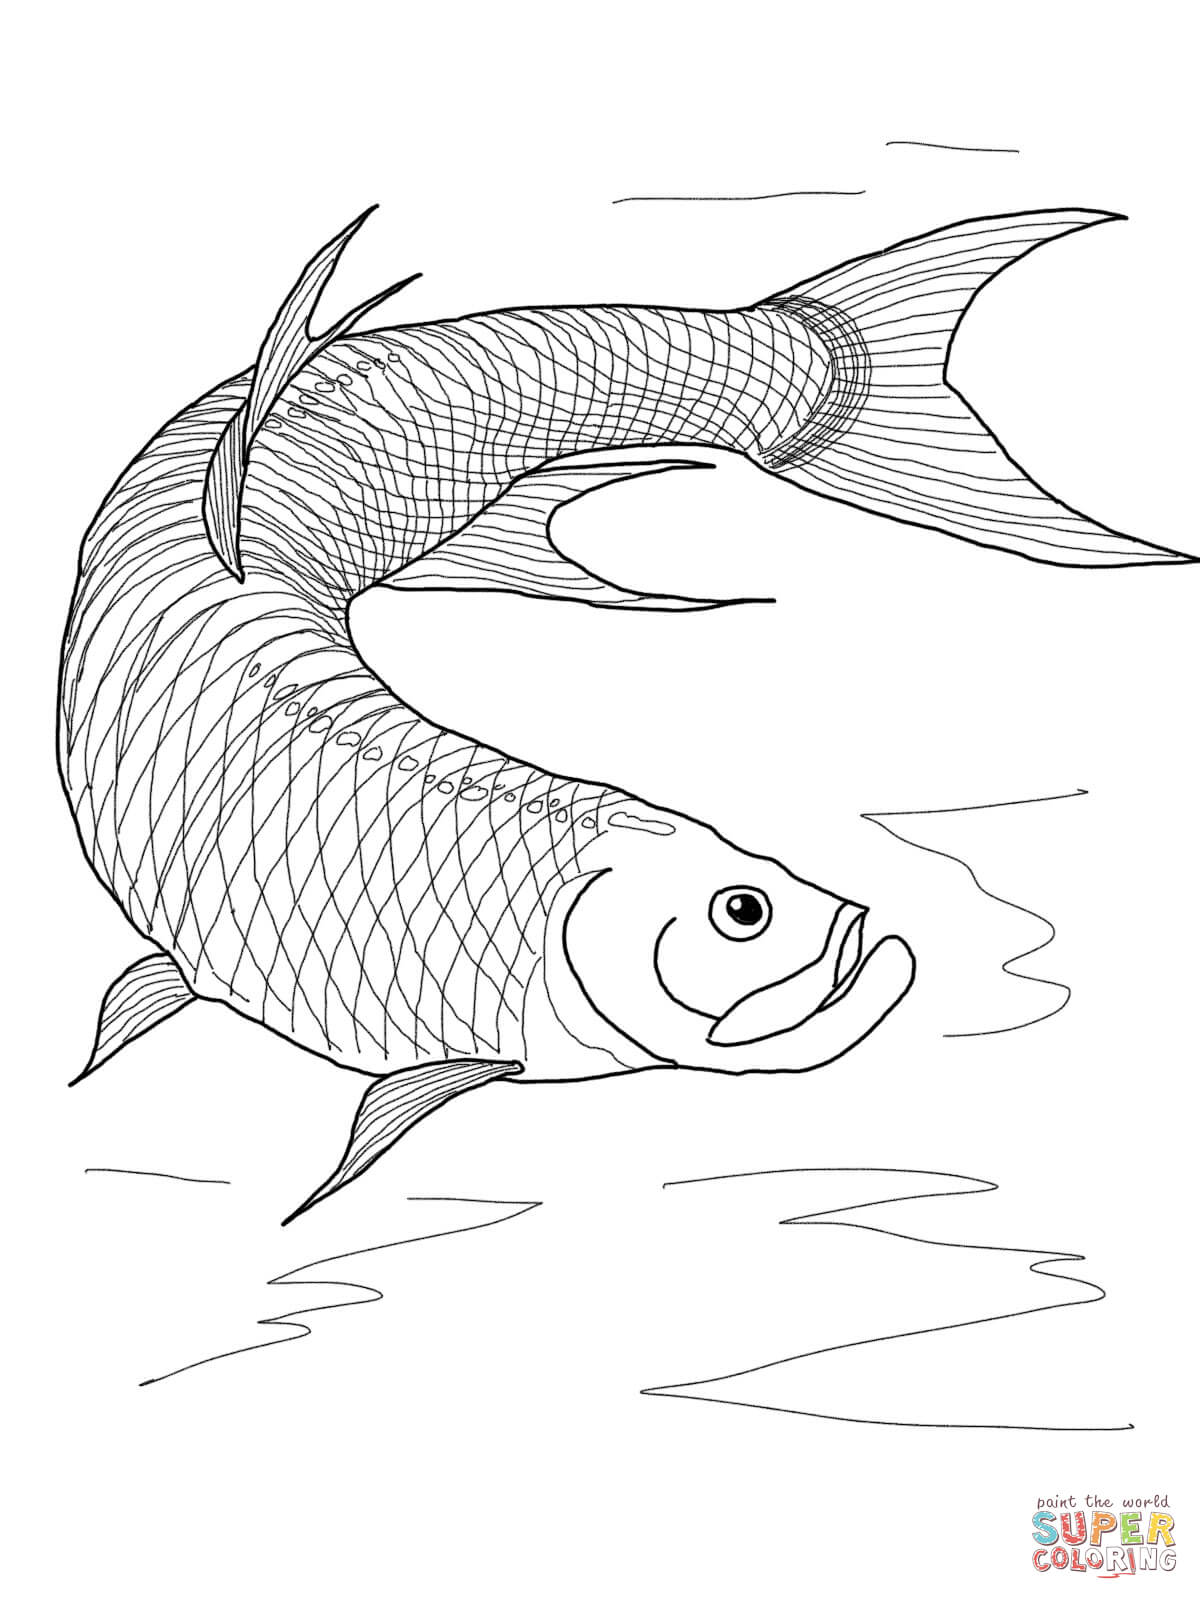 Sailfish Coloring Pages The Basking Shark Is A Very Large